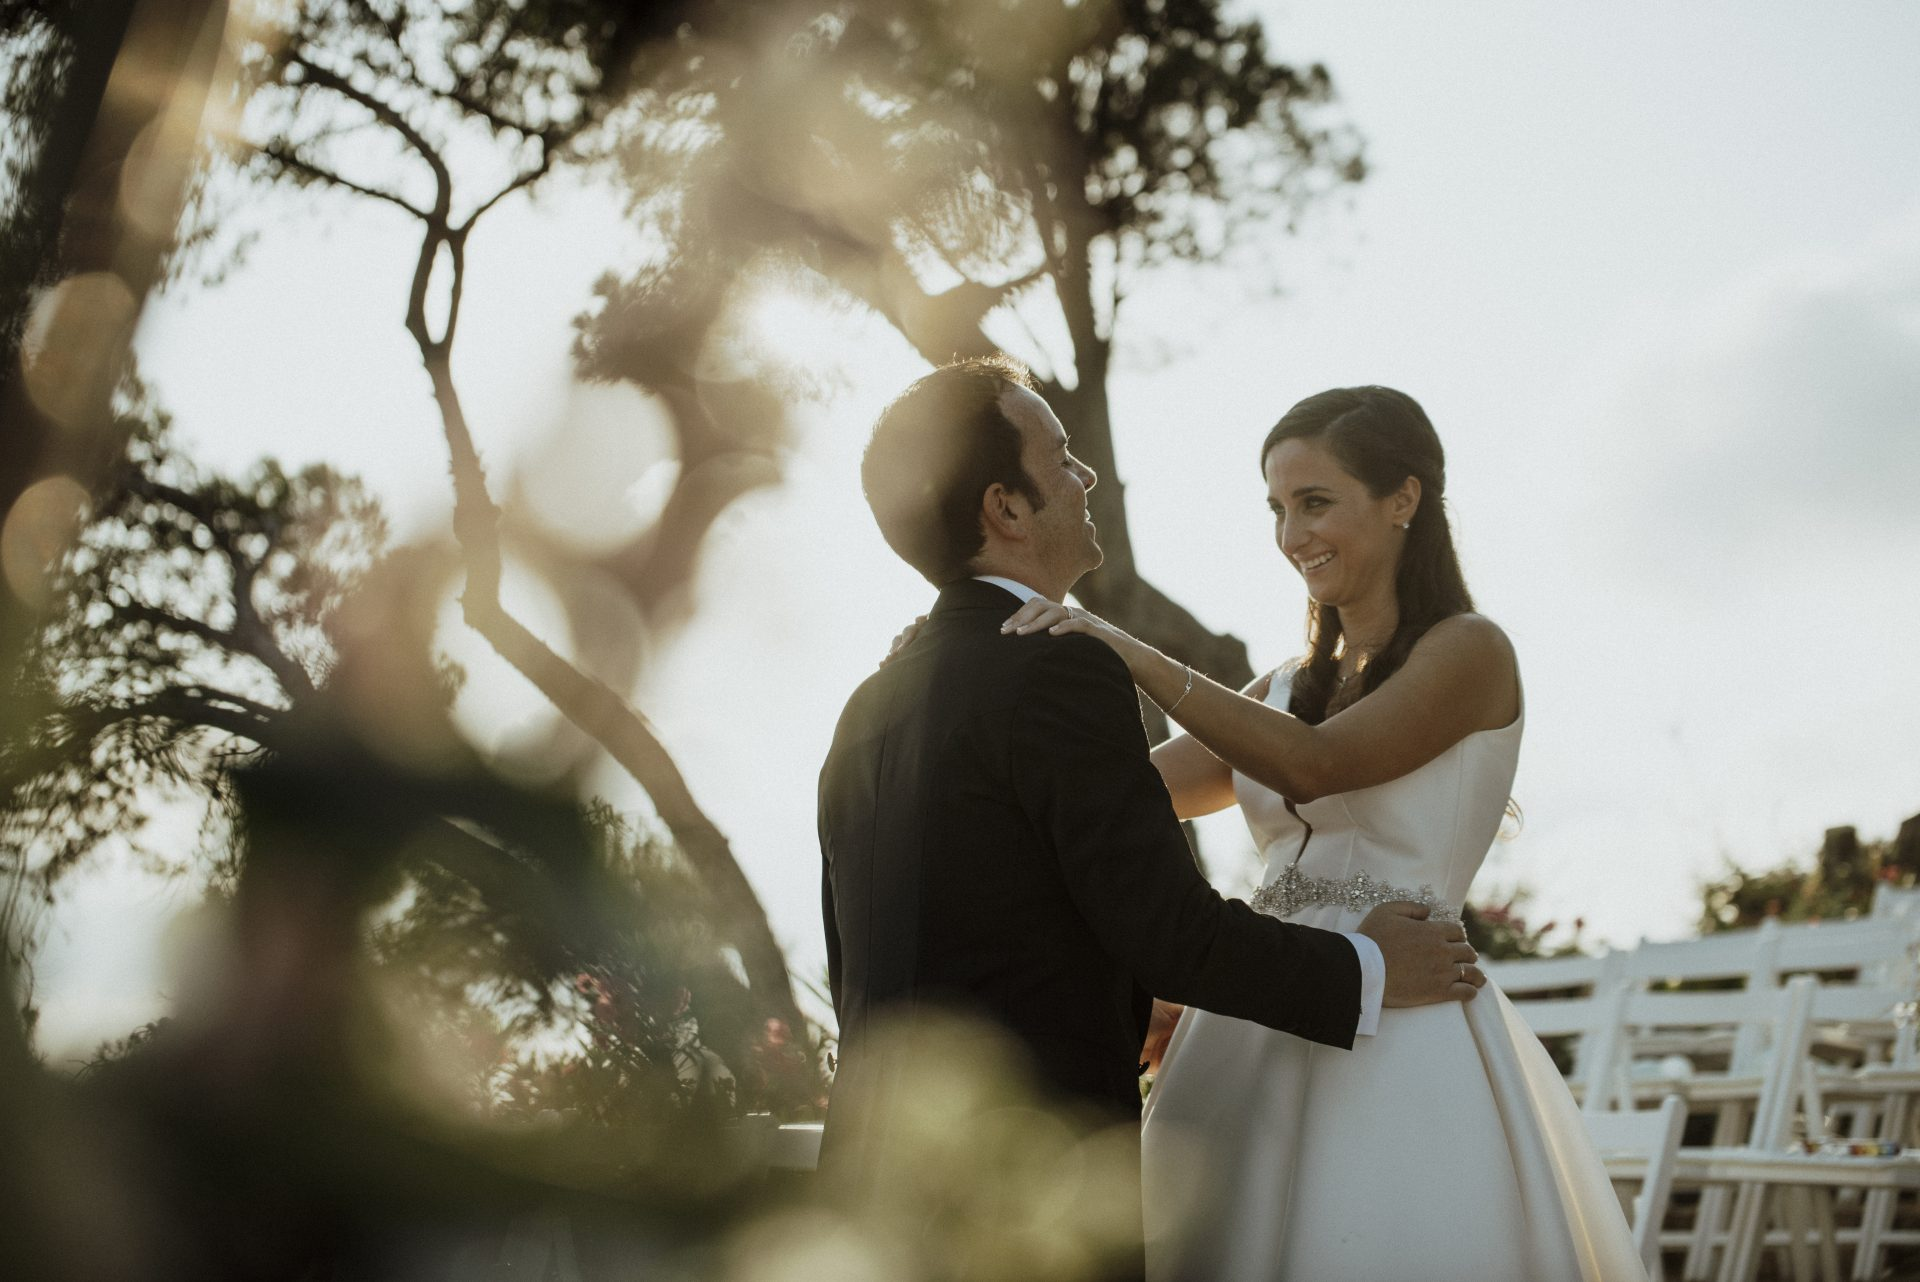 Wedding photographer and videographer at Convent de Blanes in Costa Brava